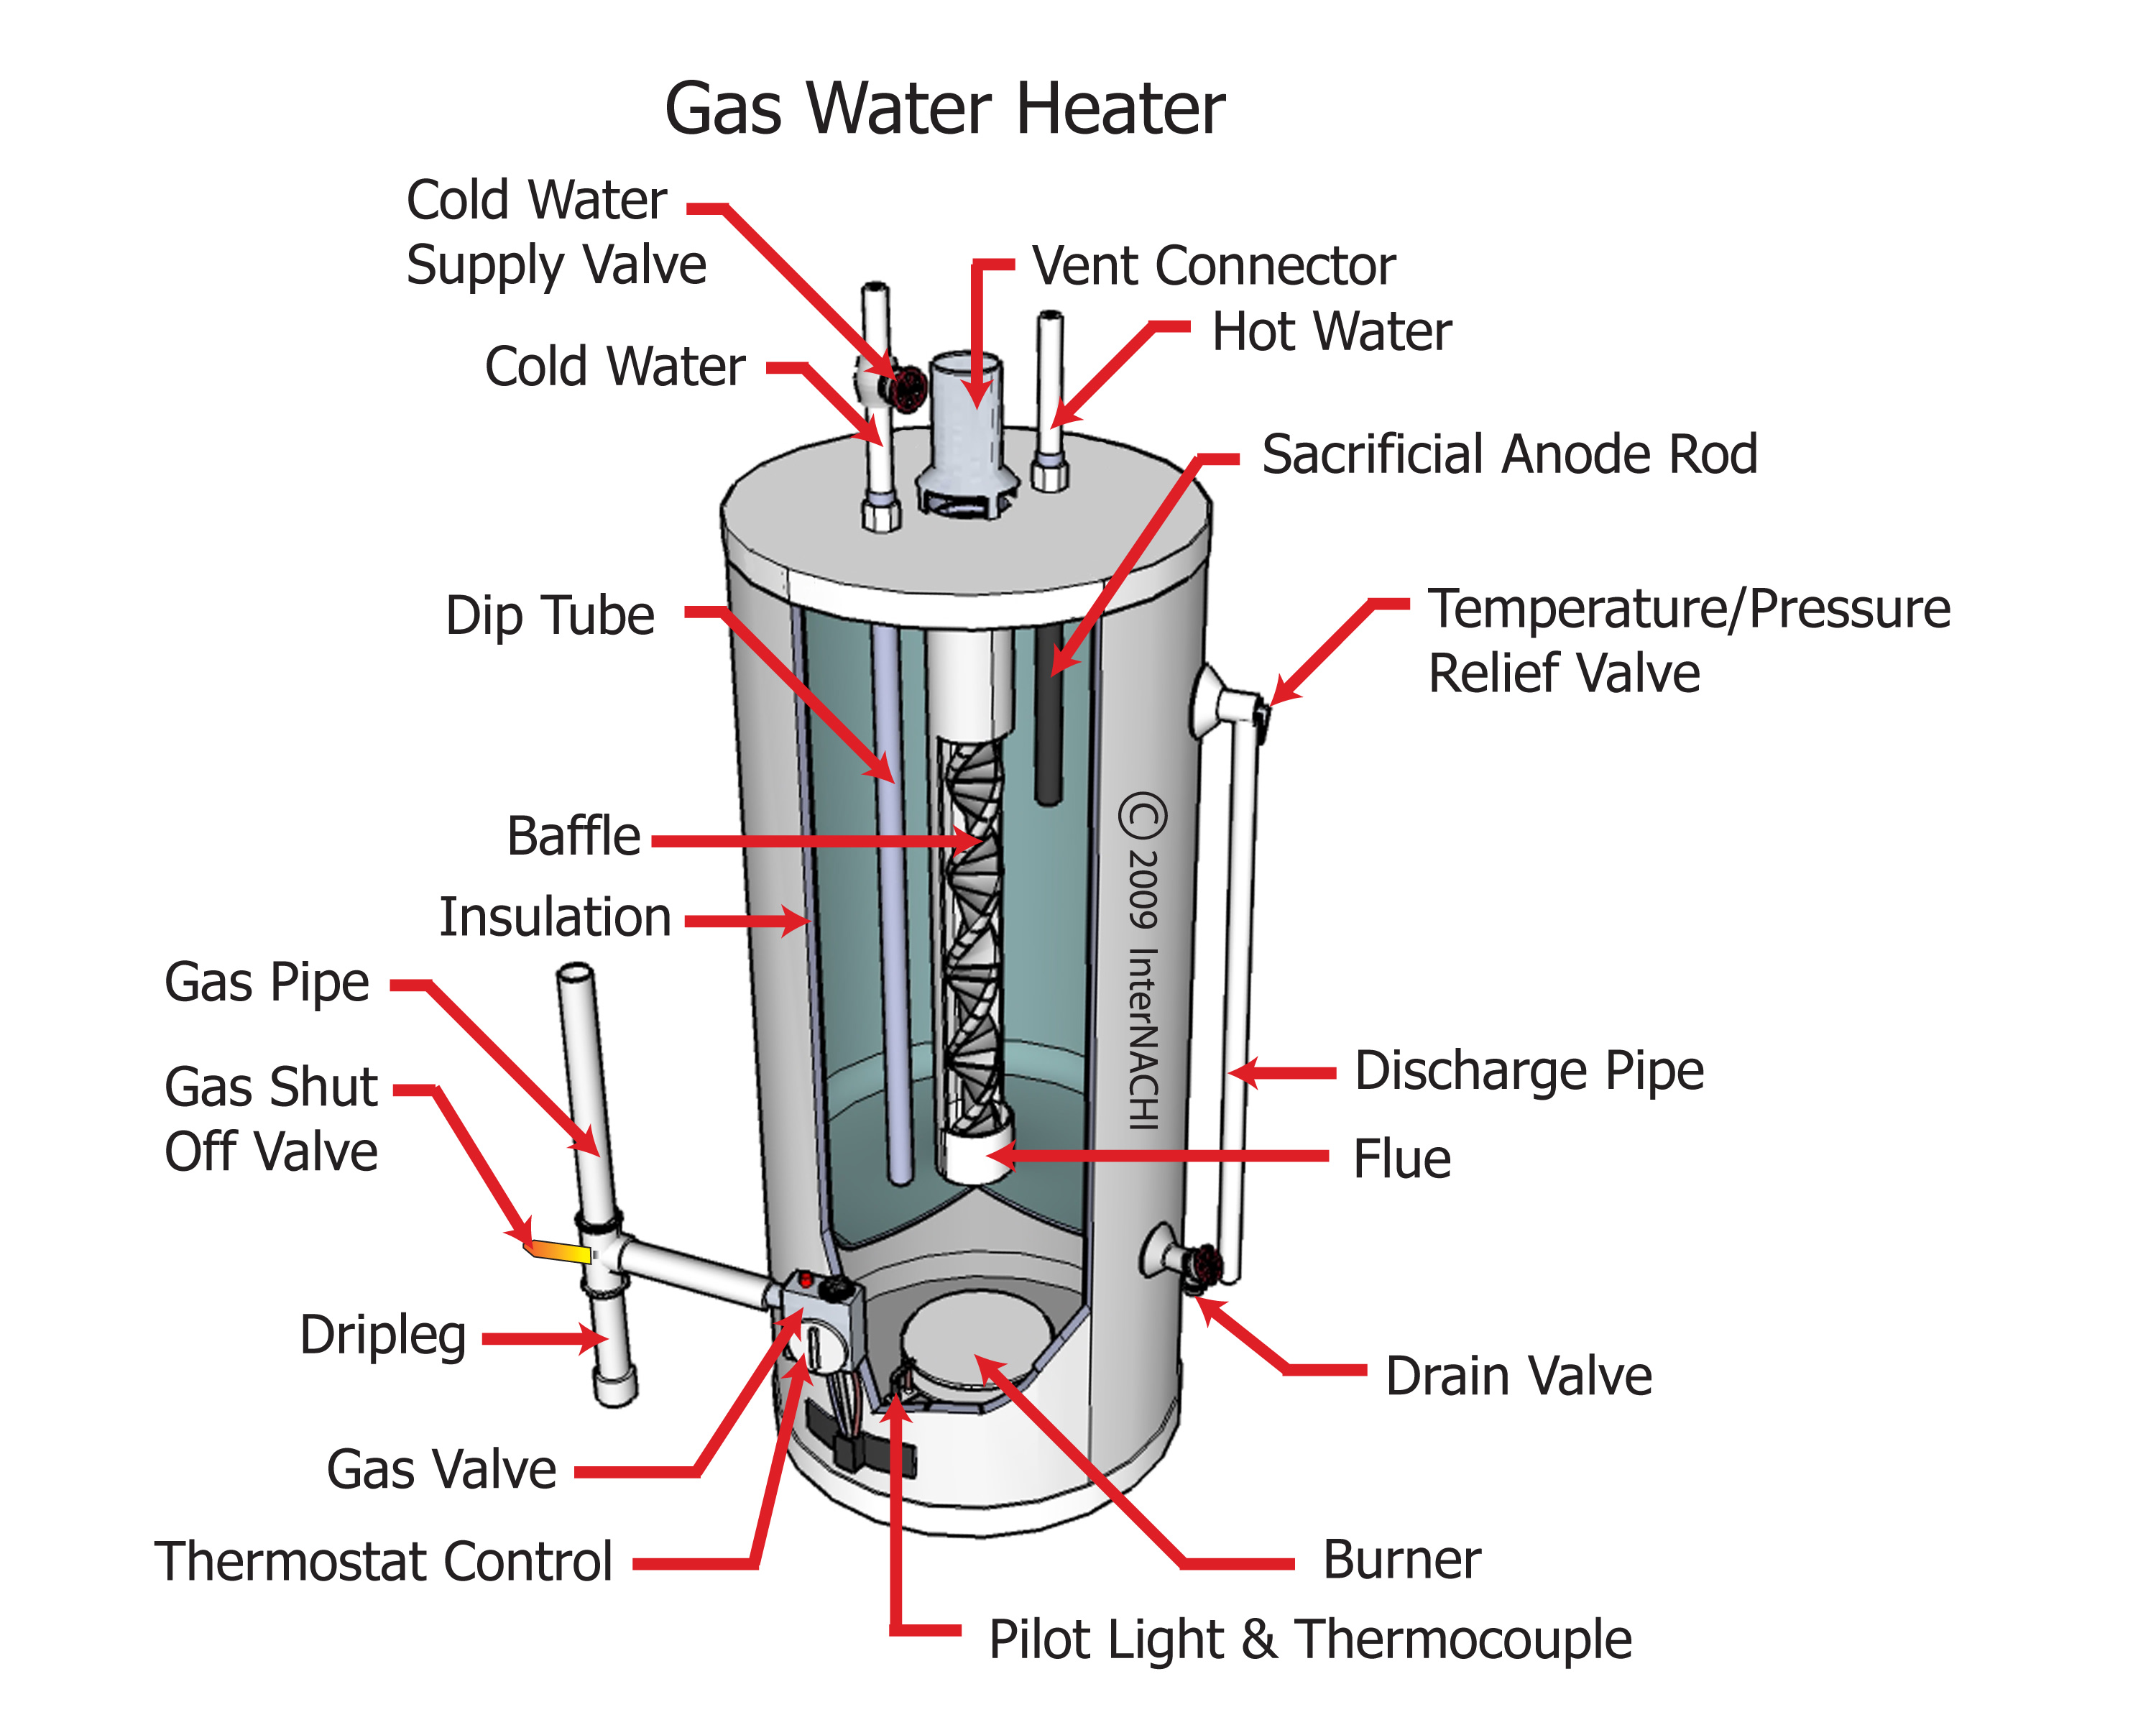 Internachi Inspection Graphics Library Plumbing General Gas Diagram And Piping Water Heater With Shut Off Valve